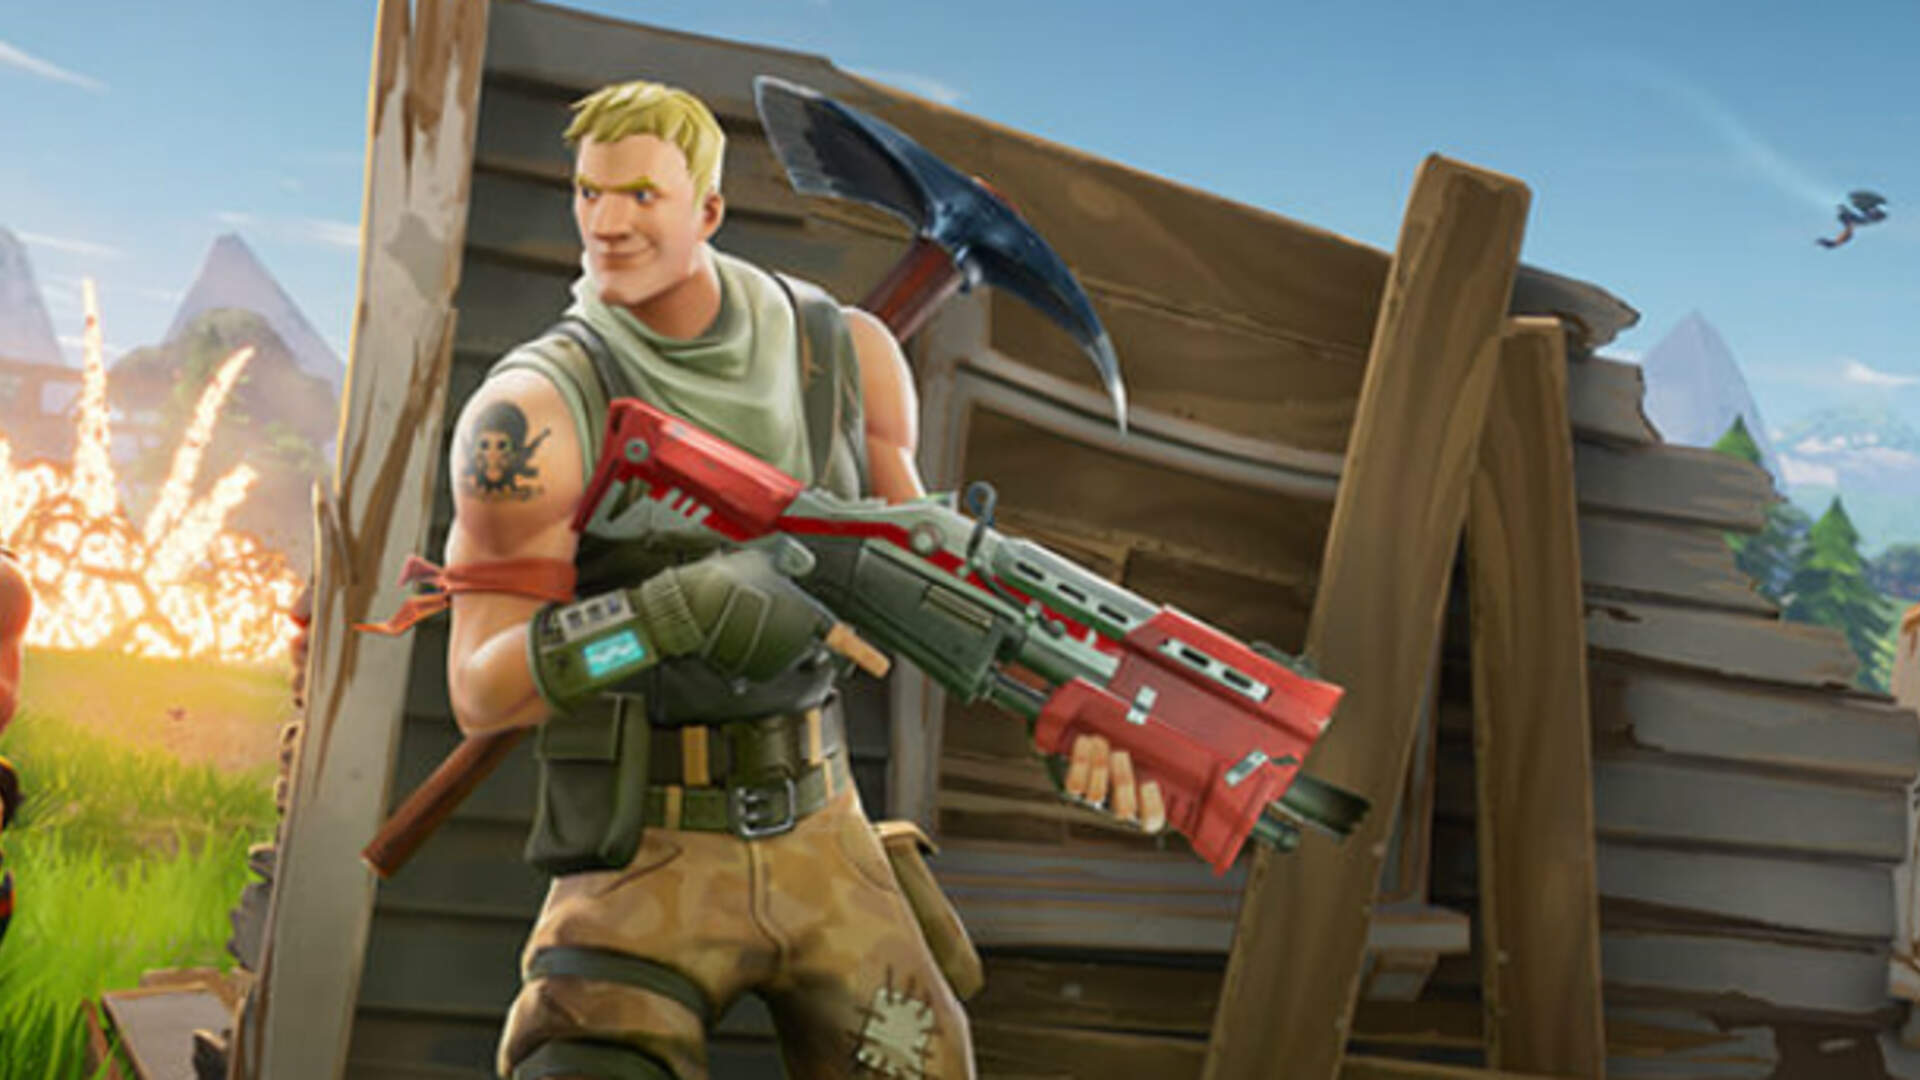 Fortnite's V-Bucks Currency is Another Battleground for a Community at Odds